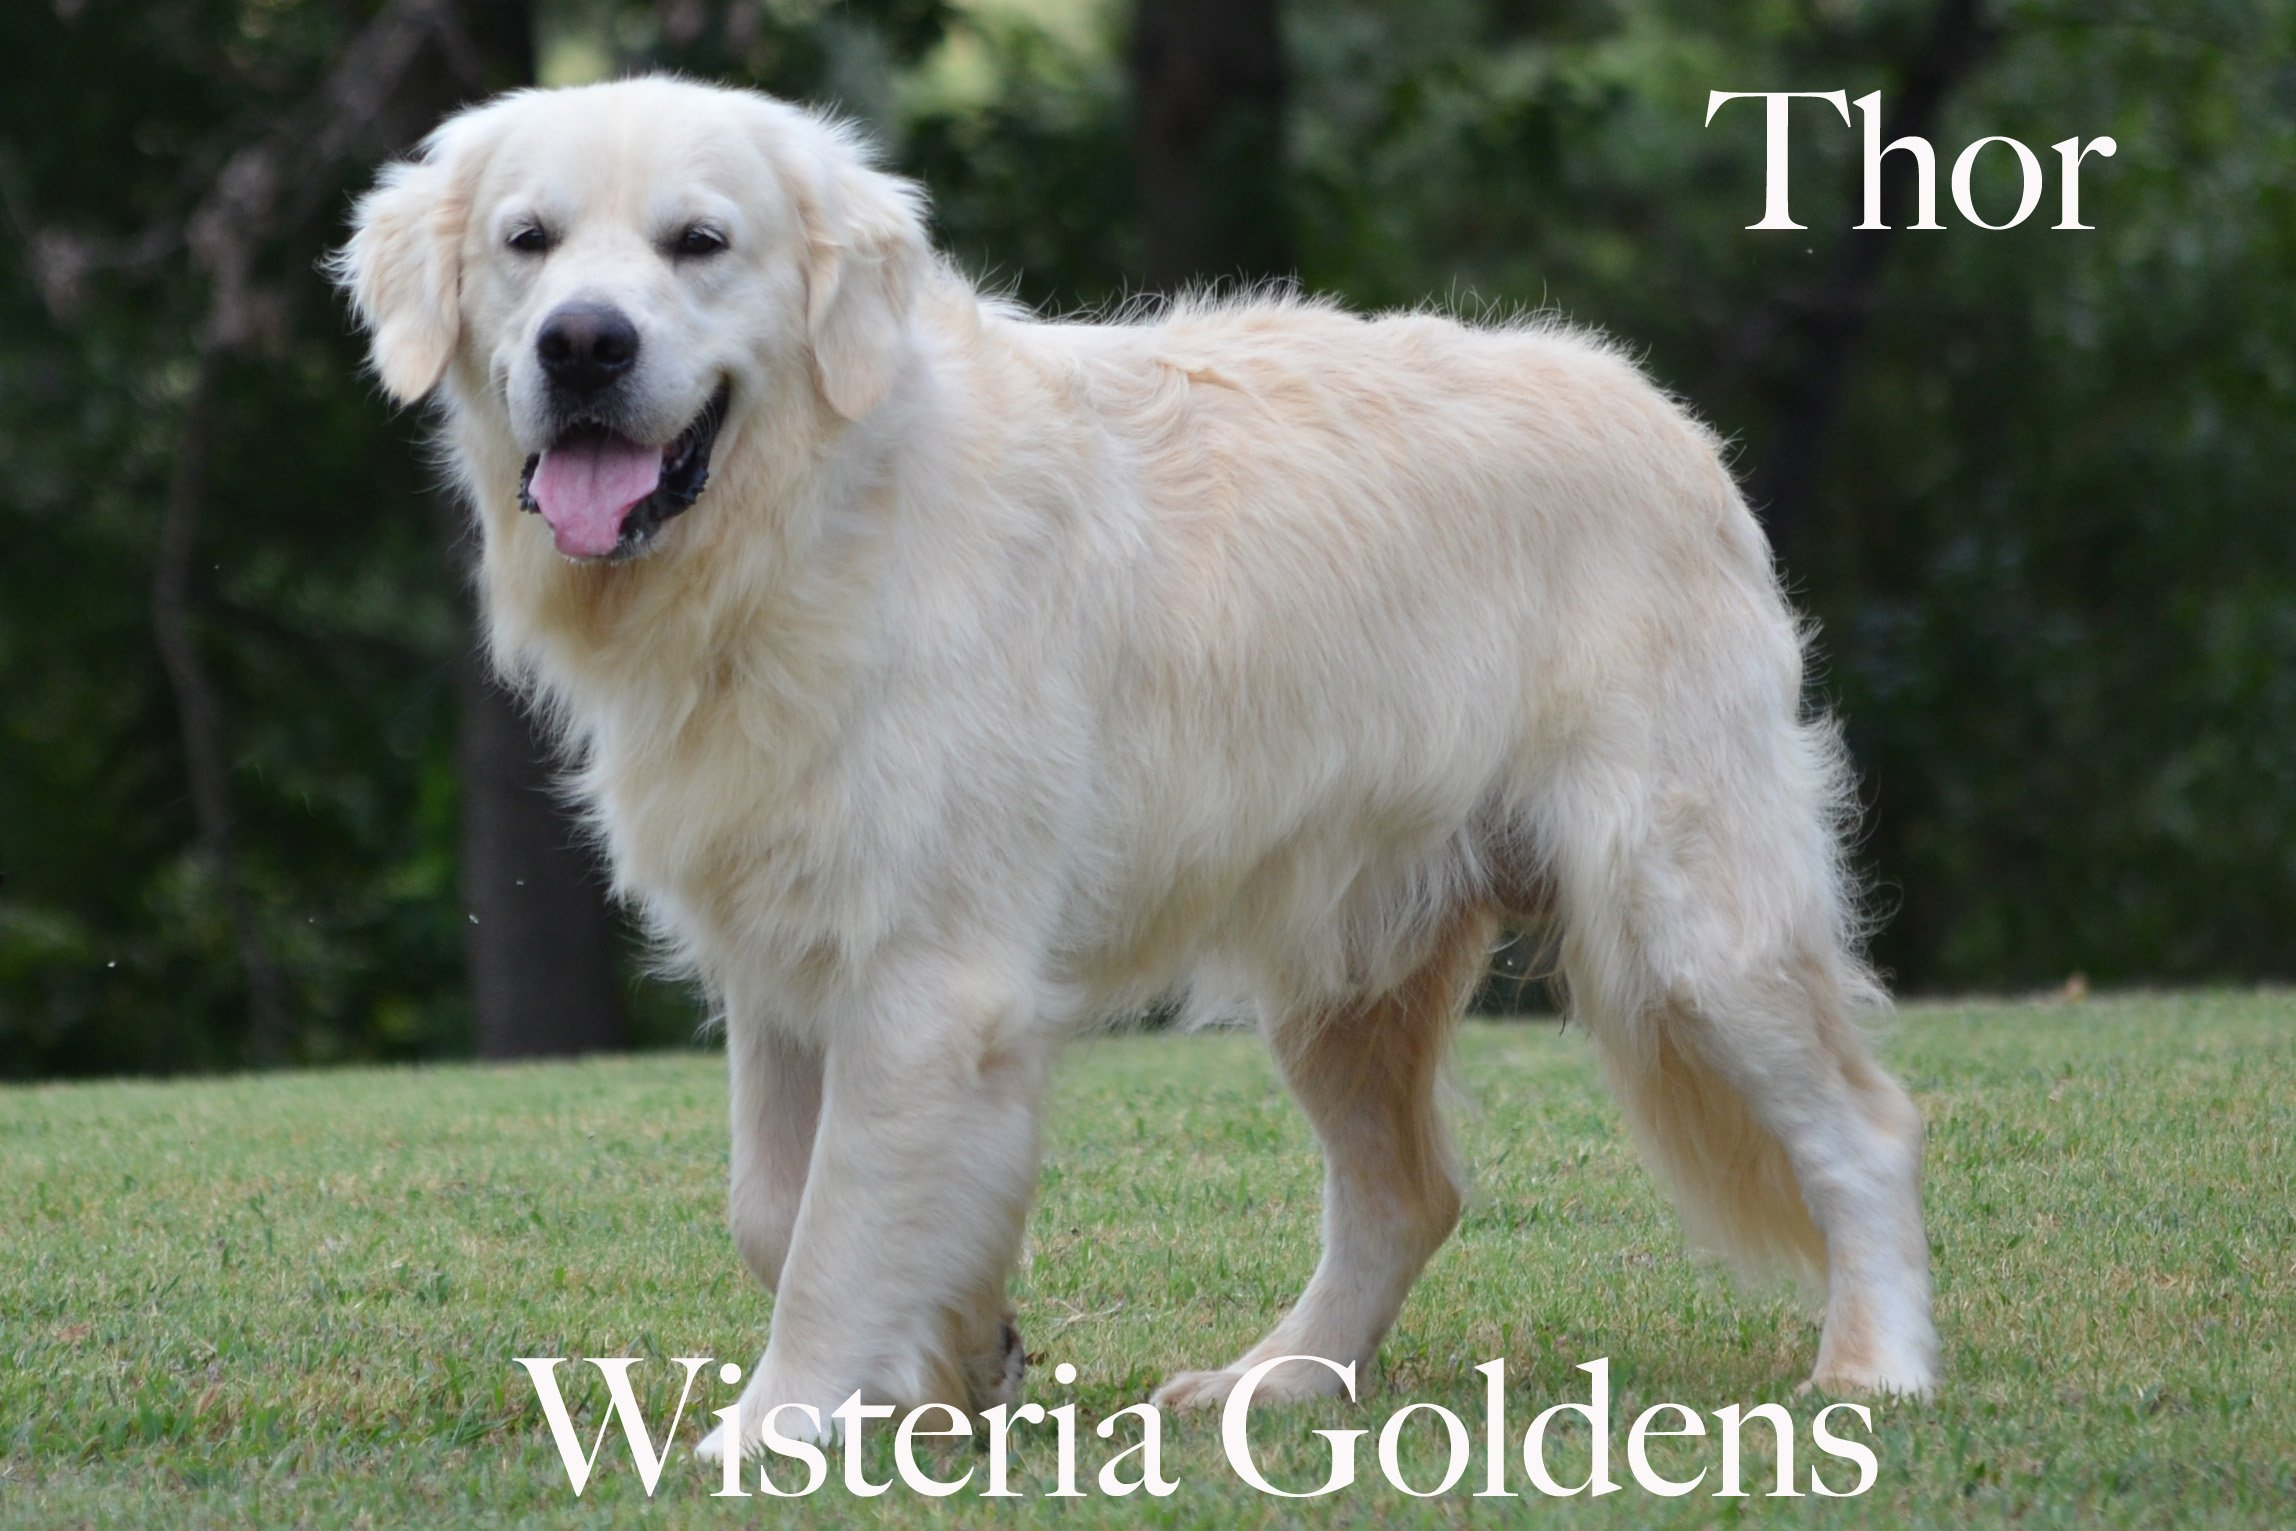 Thor-0465-thor-full-english-creme-golden-retrievers-wisteria-goldens